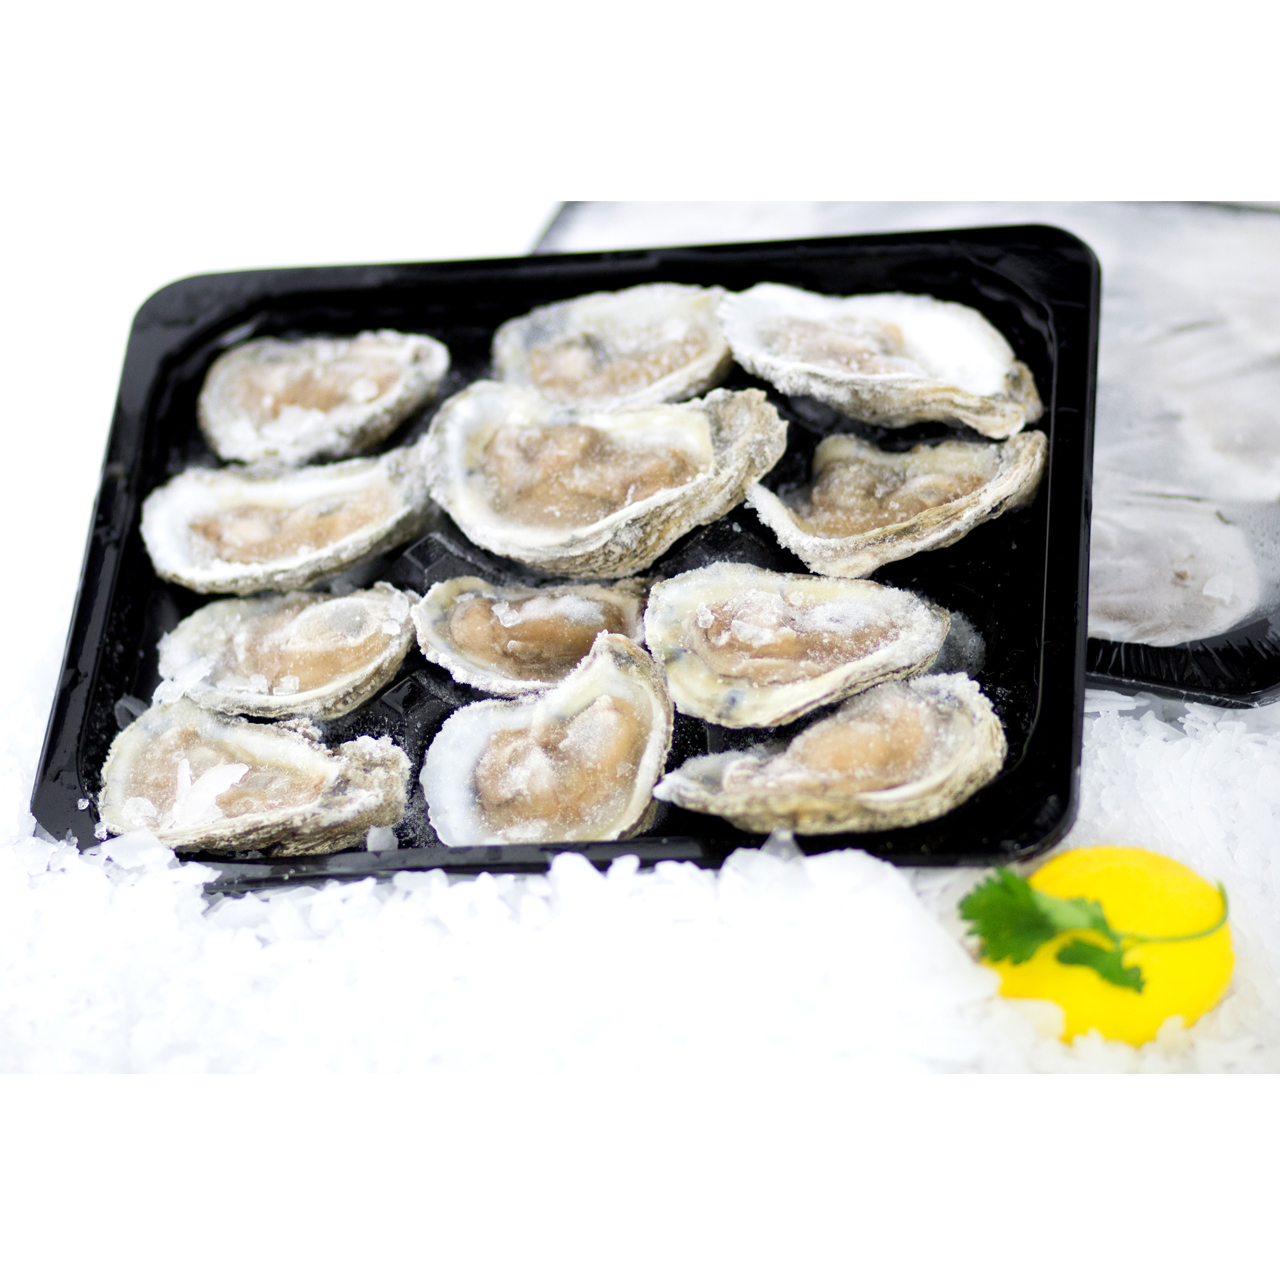 Packaged oysters over ice with garnish